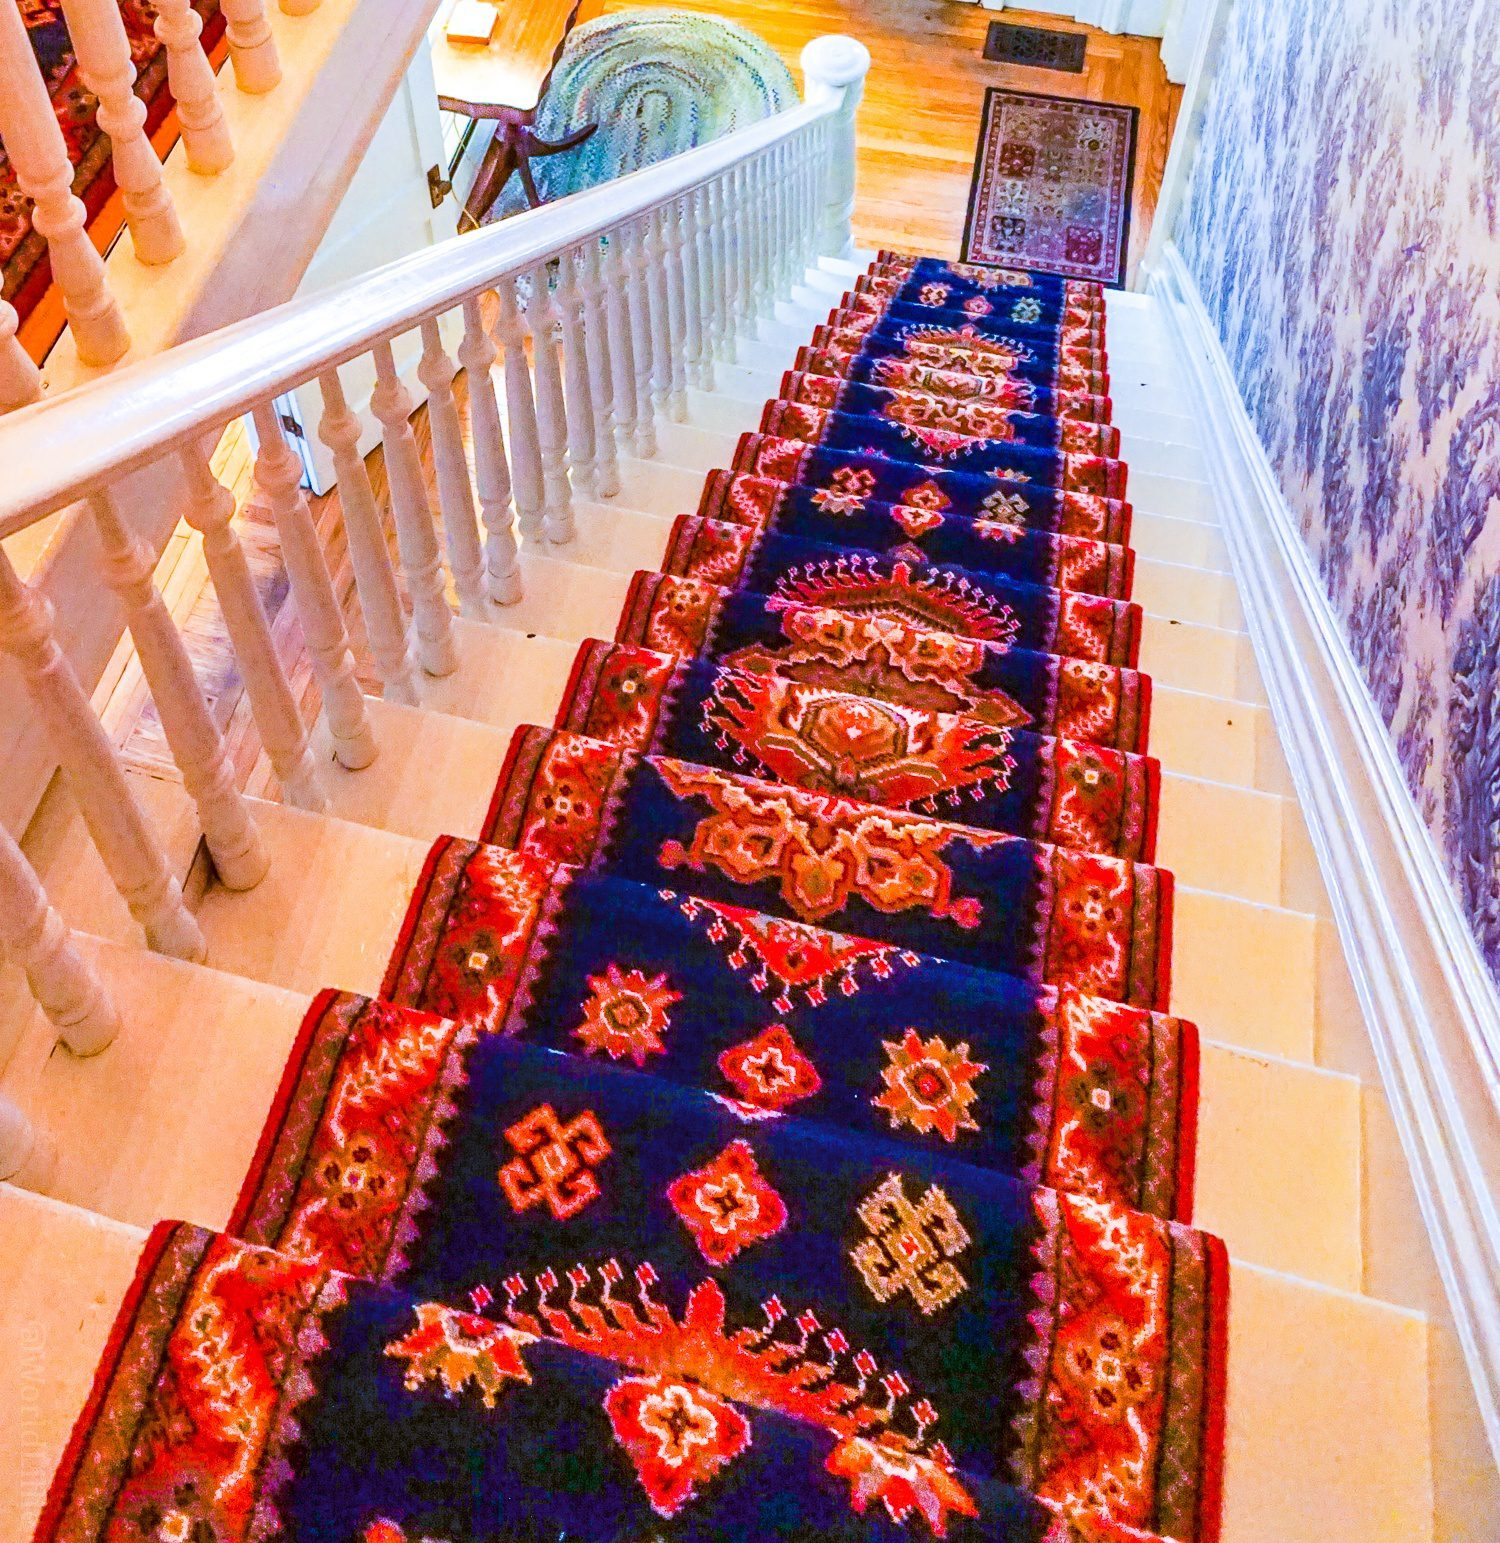 Antique hotel carpets an staircase at the Red Lion Inn